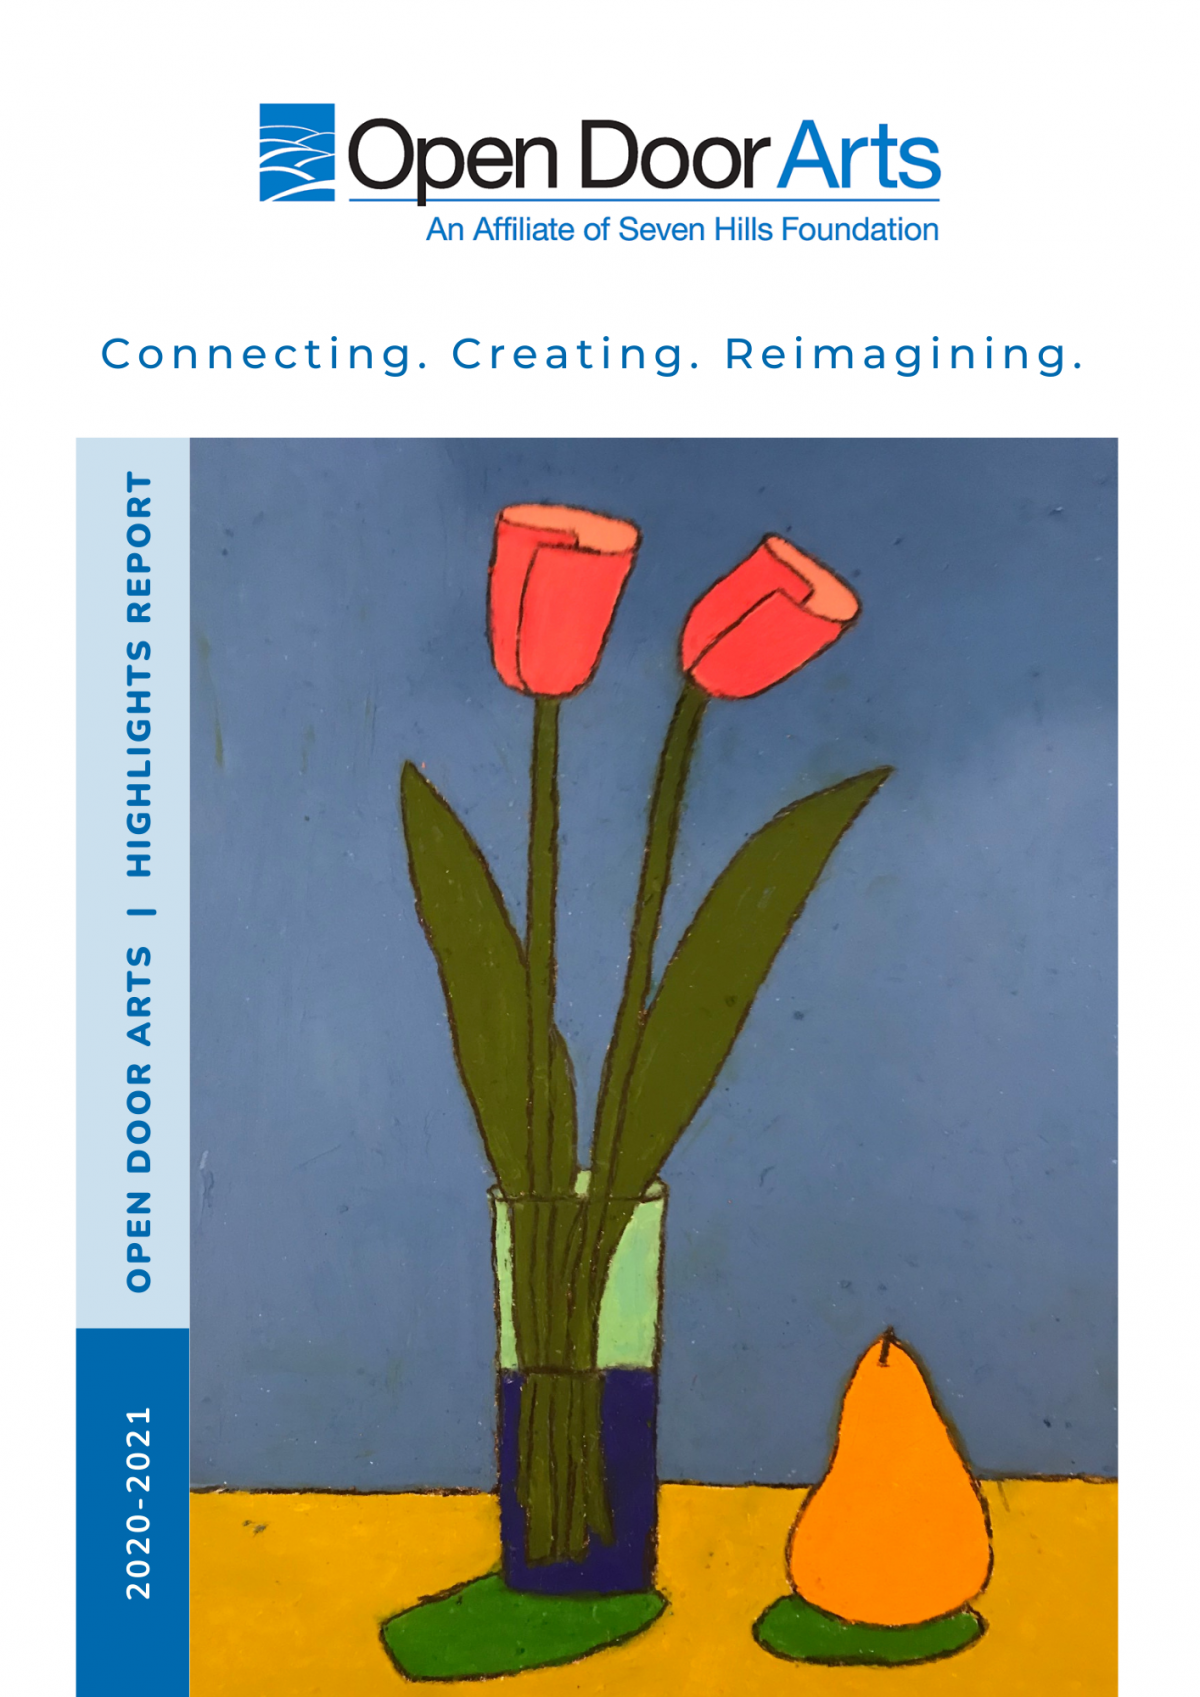 An image of a painting of two red tulips in a vase next to a pear by Sam Tomasillo with the text FY21 highlights: connecting, creating, reimagining